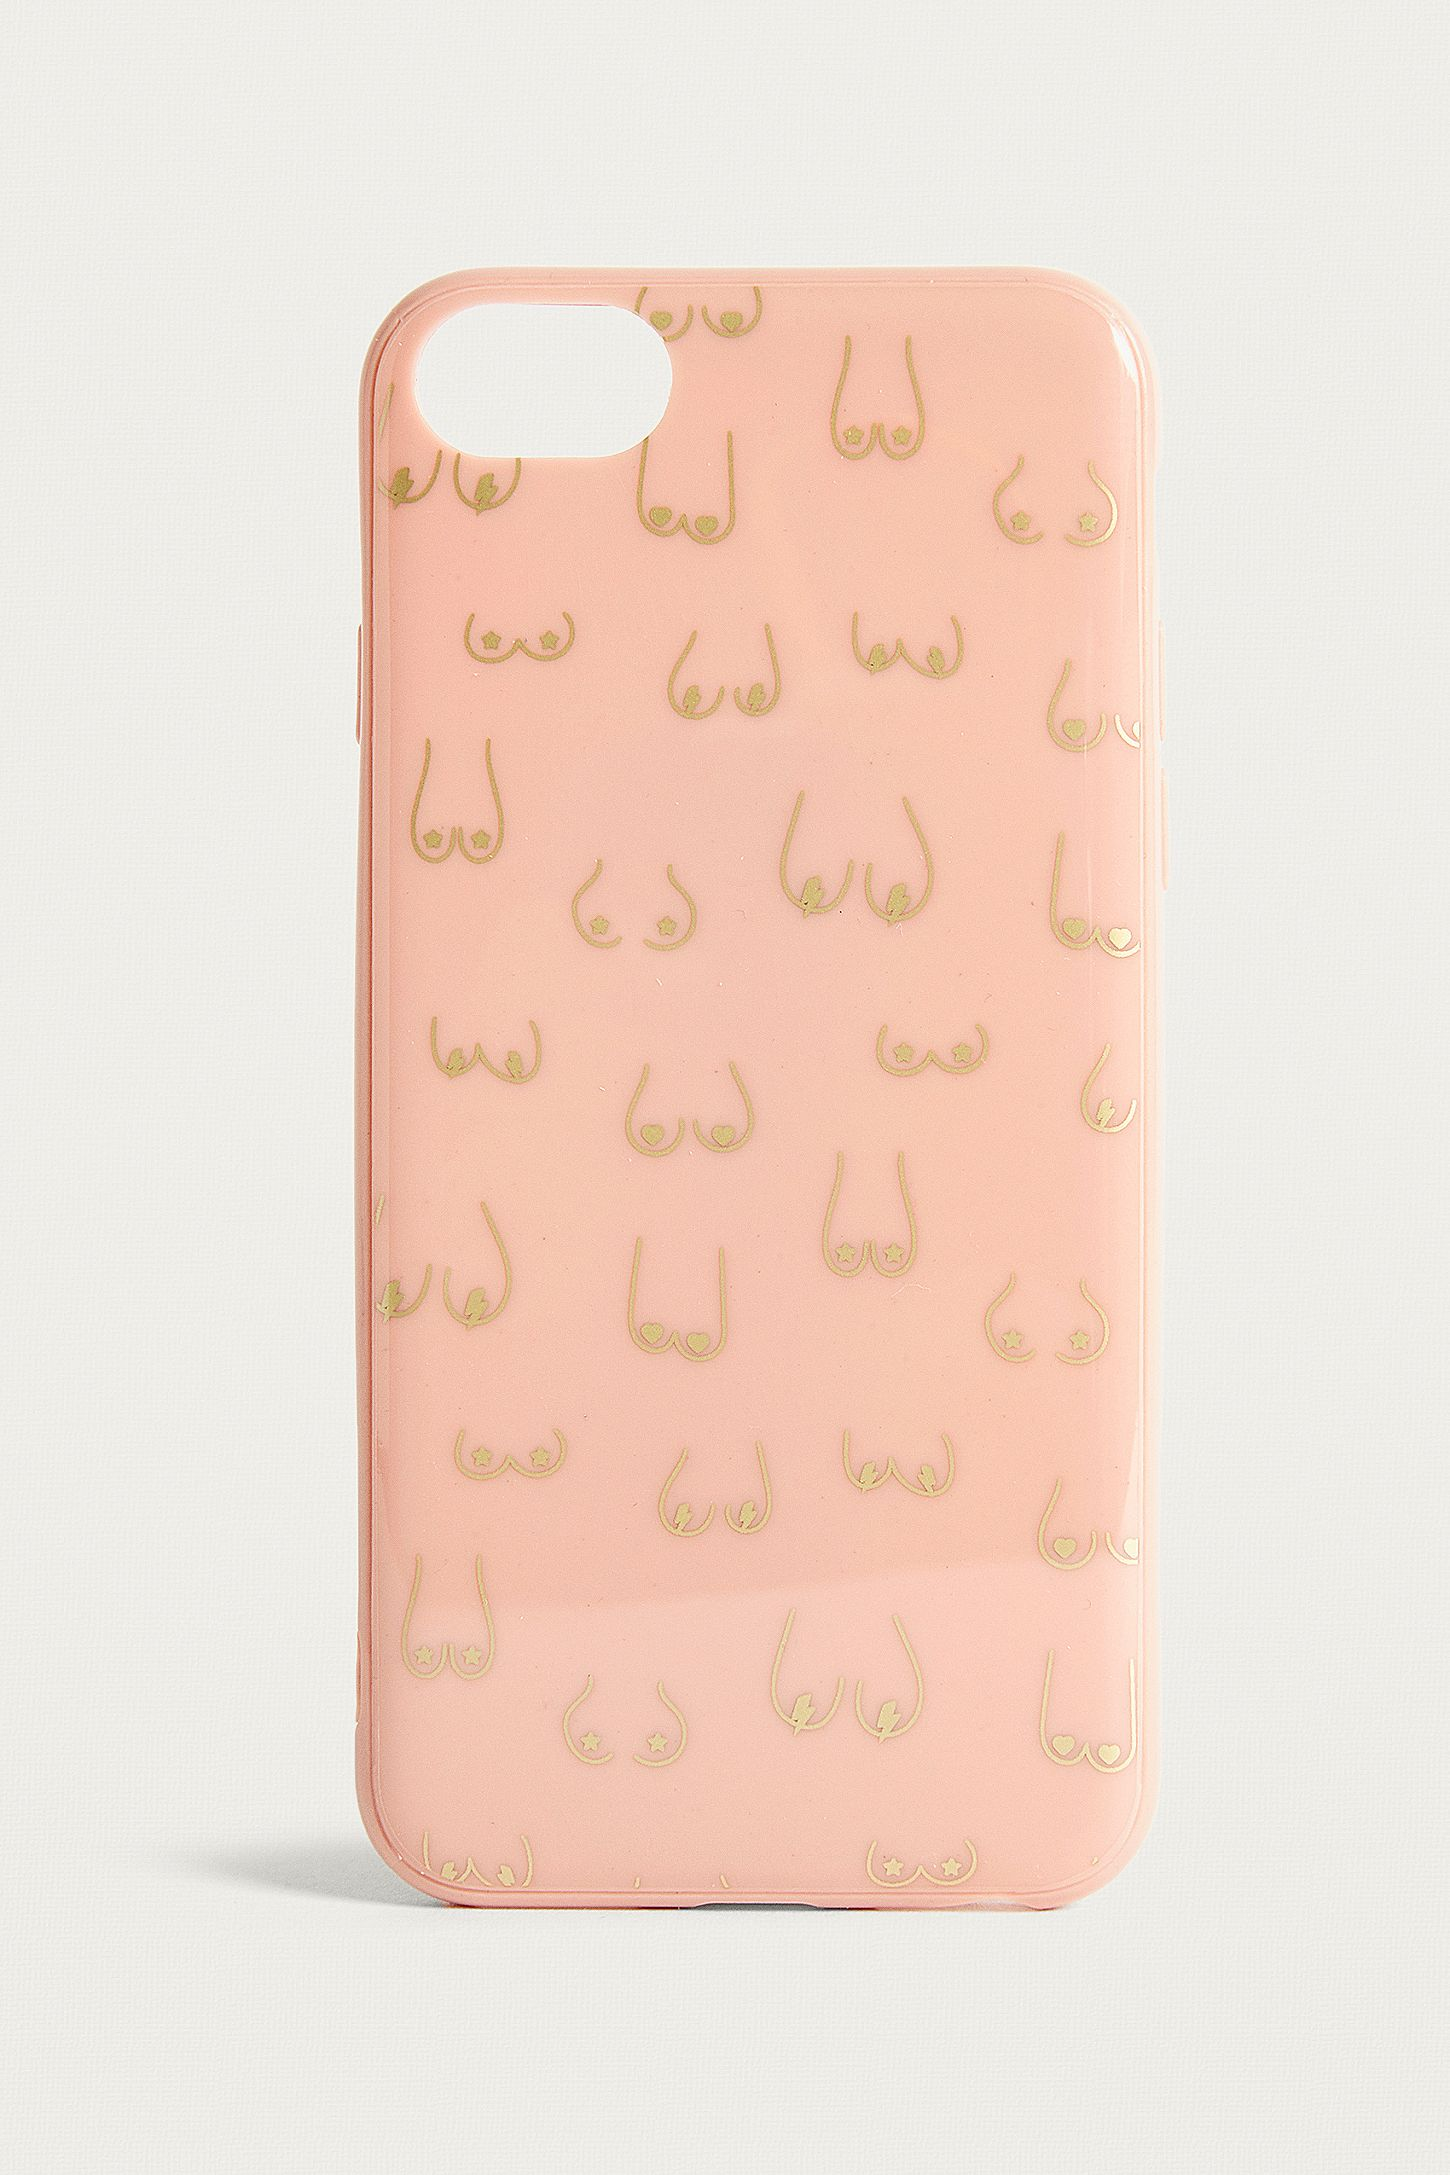 Multi Boob Iphone 678 Case Urban Outfitters Uk